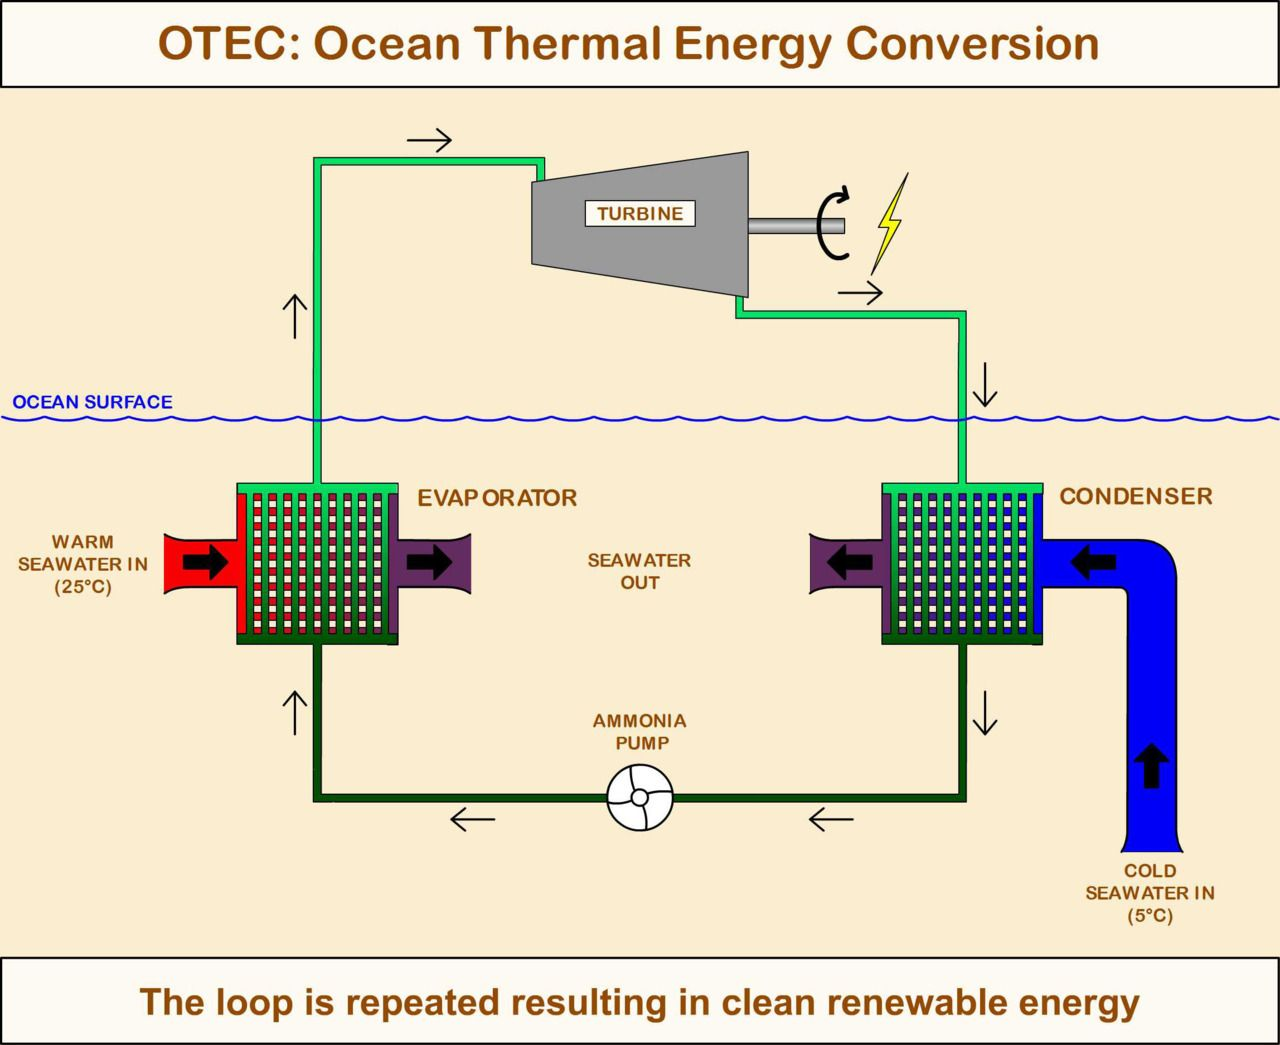 medium resolution of thermal energy diagram wiring diagram forward geothermal energy diagram otec production diagram ocean thermal energy conversion